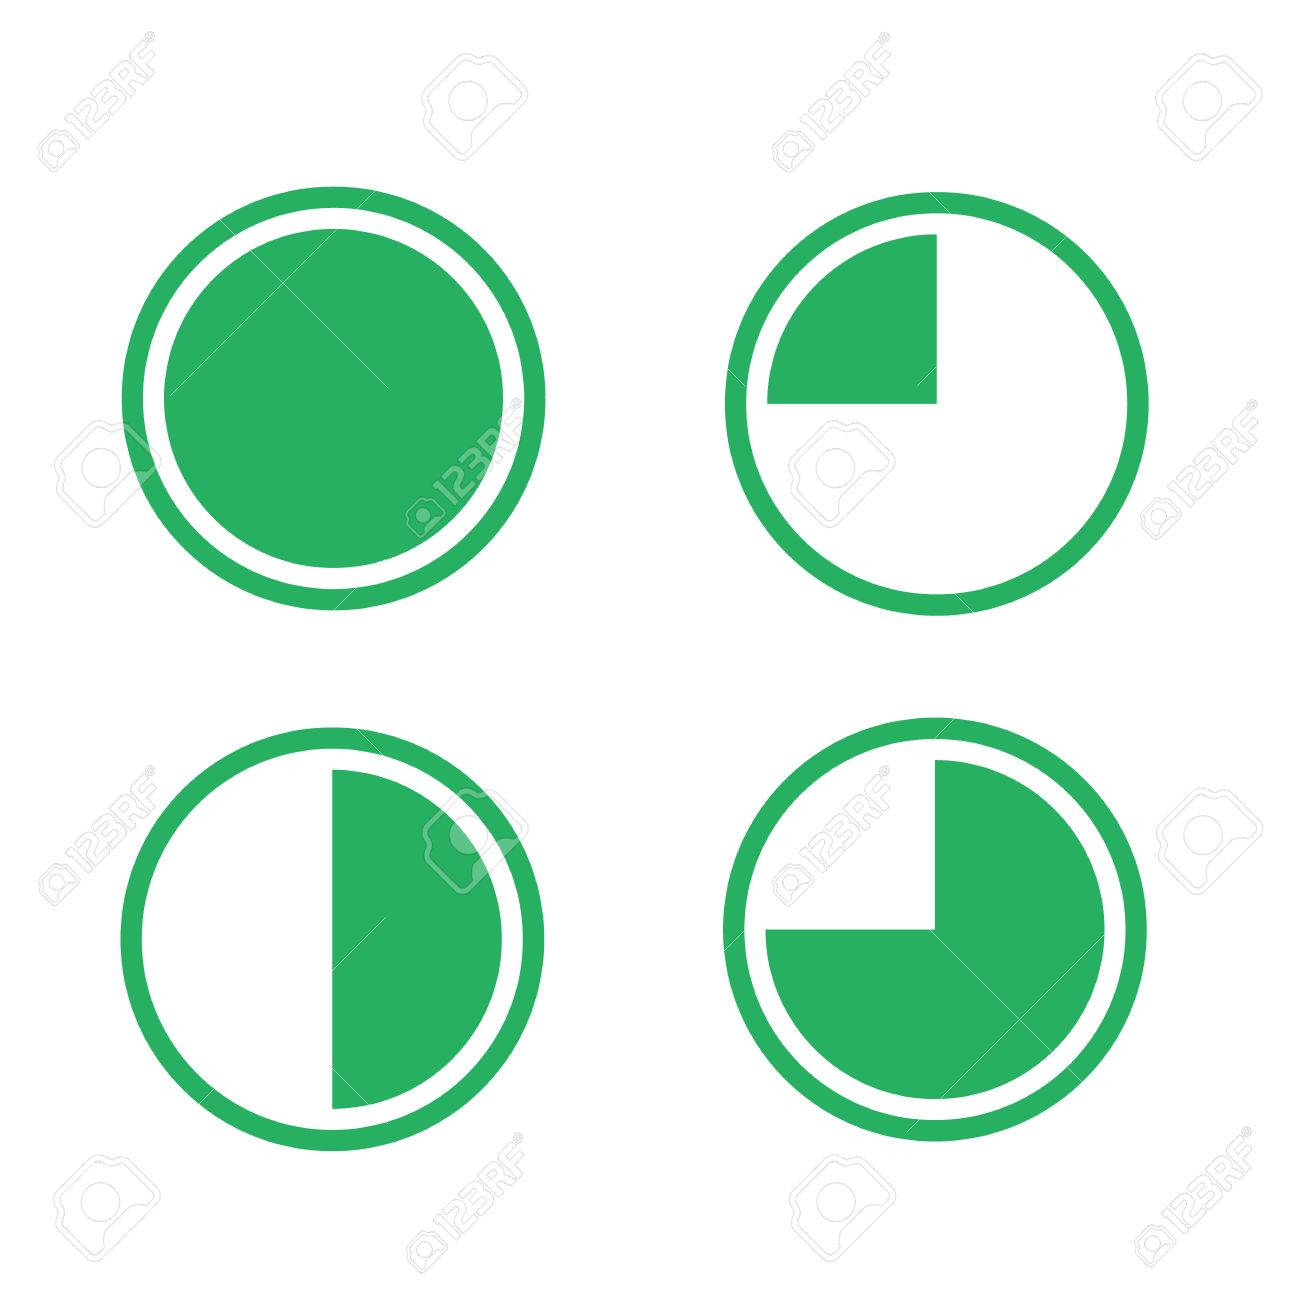 Icons pie graph circle percentage chart green 25 50 75 100 icons pie graph circle percentage chart green 25 50 75 100 set illustration round vector nvjuhfo Choice Image